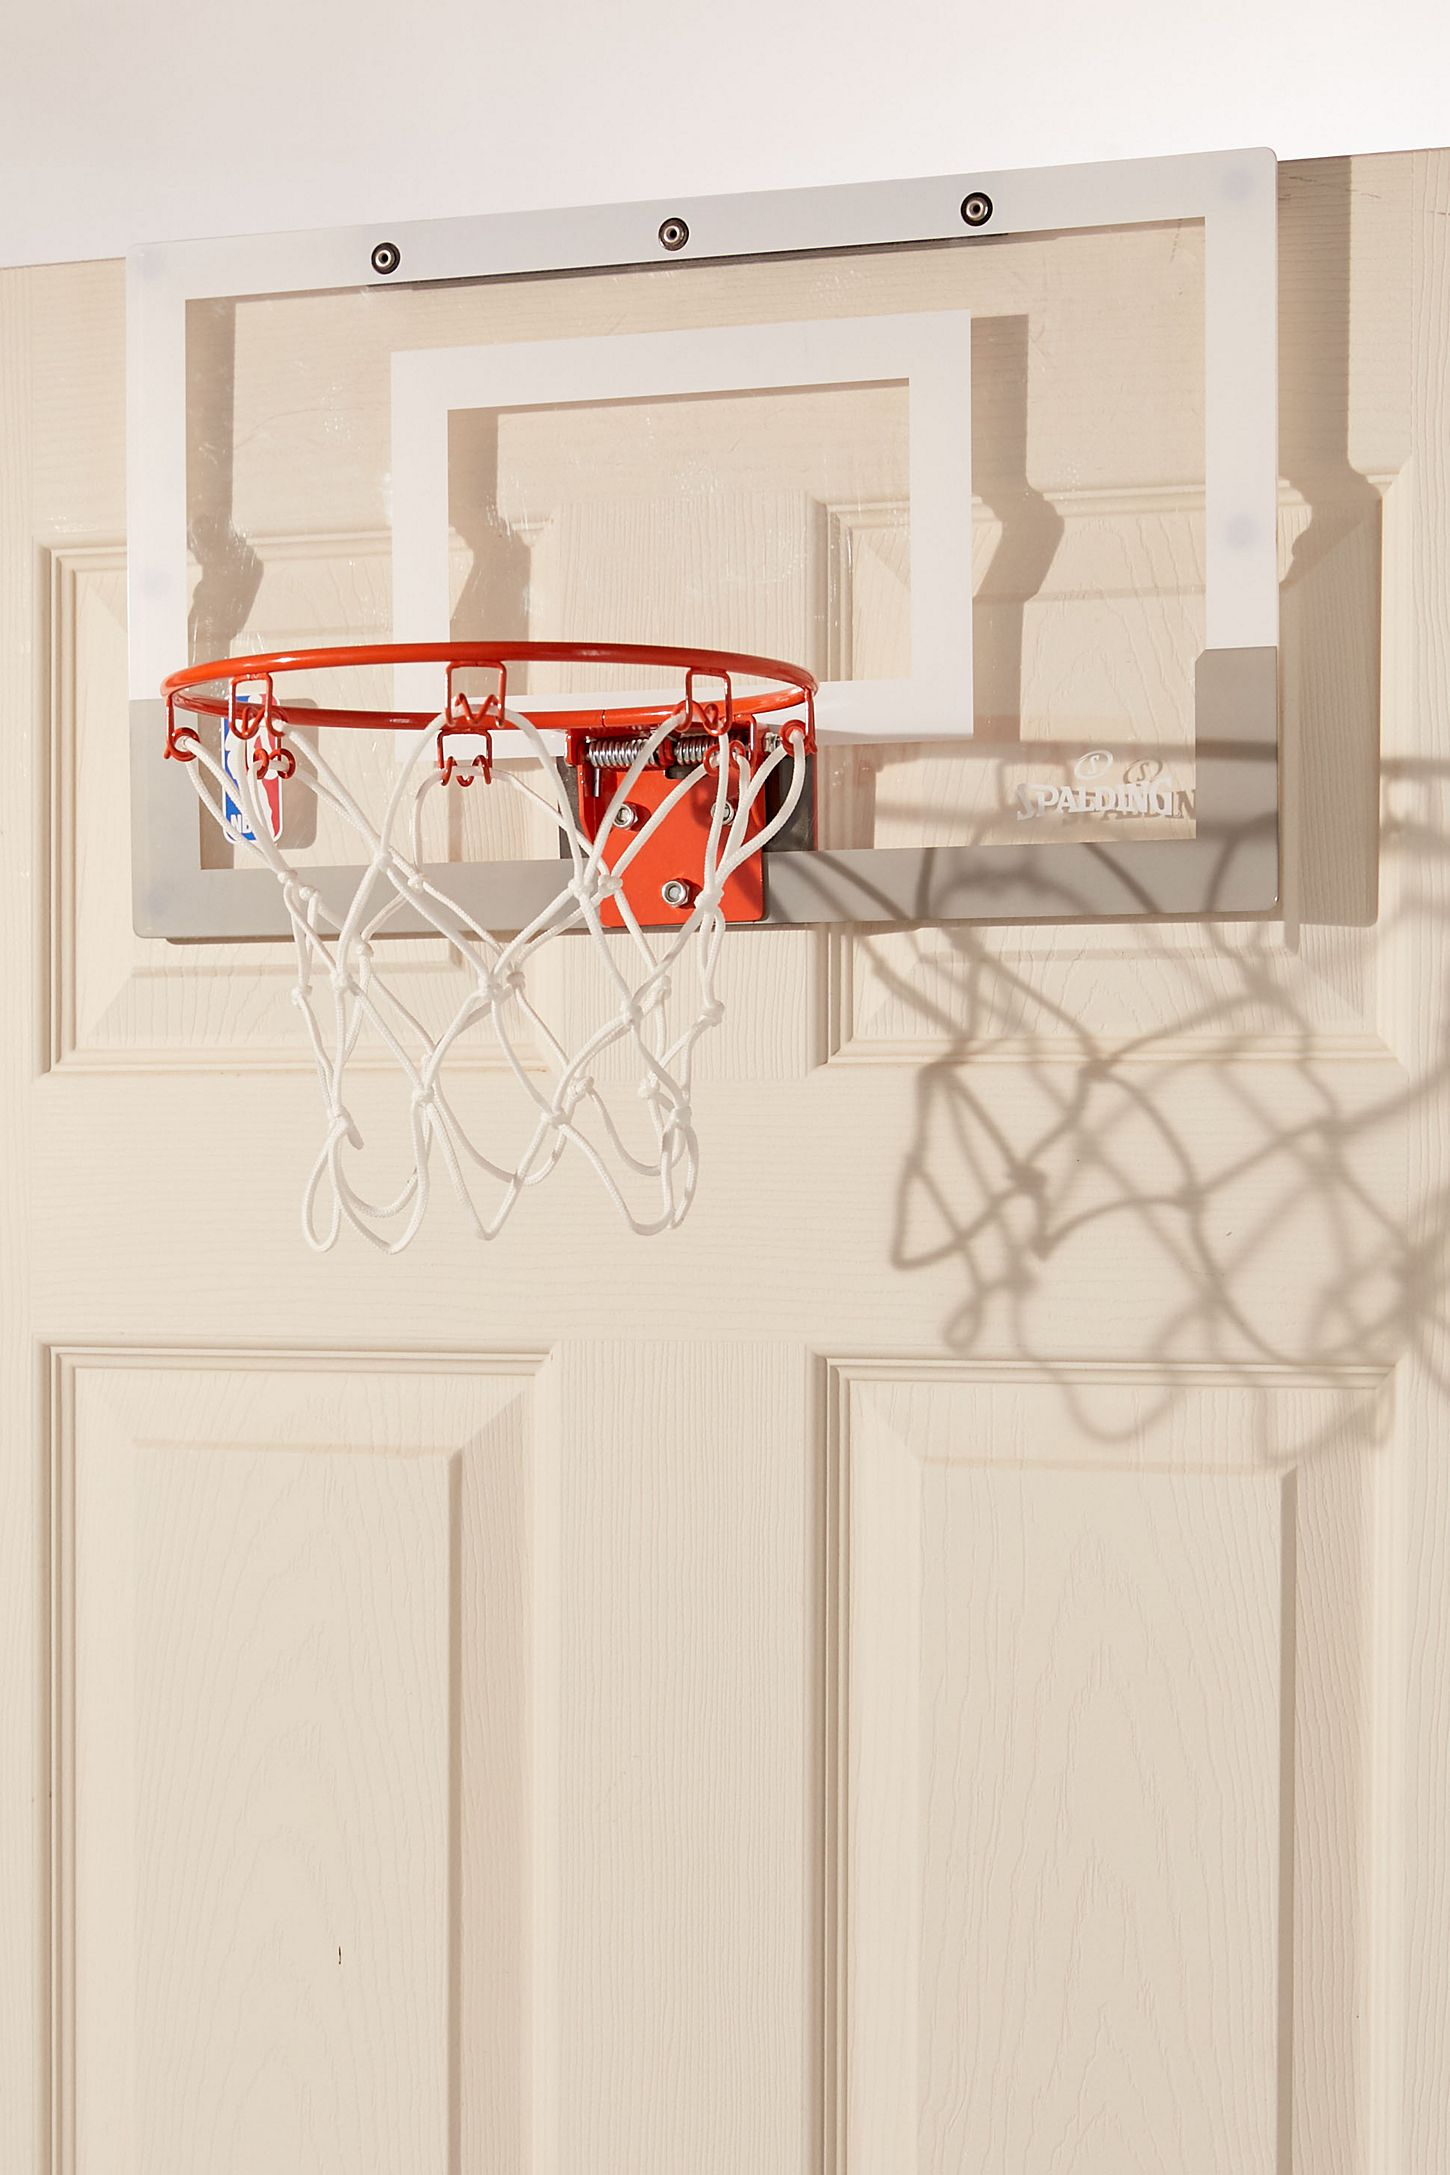 Slide View 3 Spalding Over The Door Slam Dunk Mini Basketball Hoop